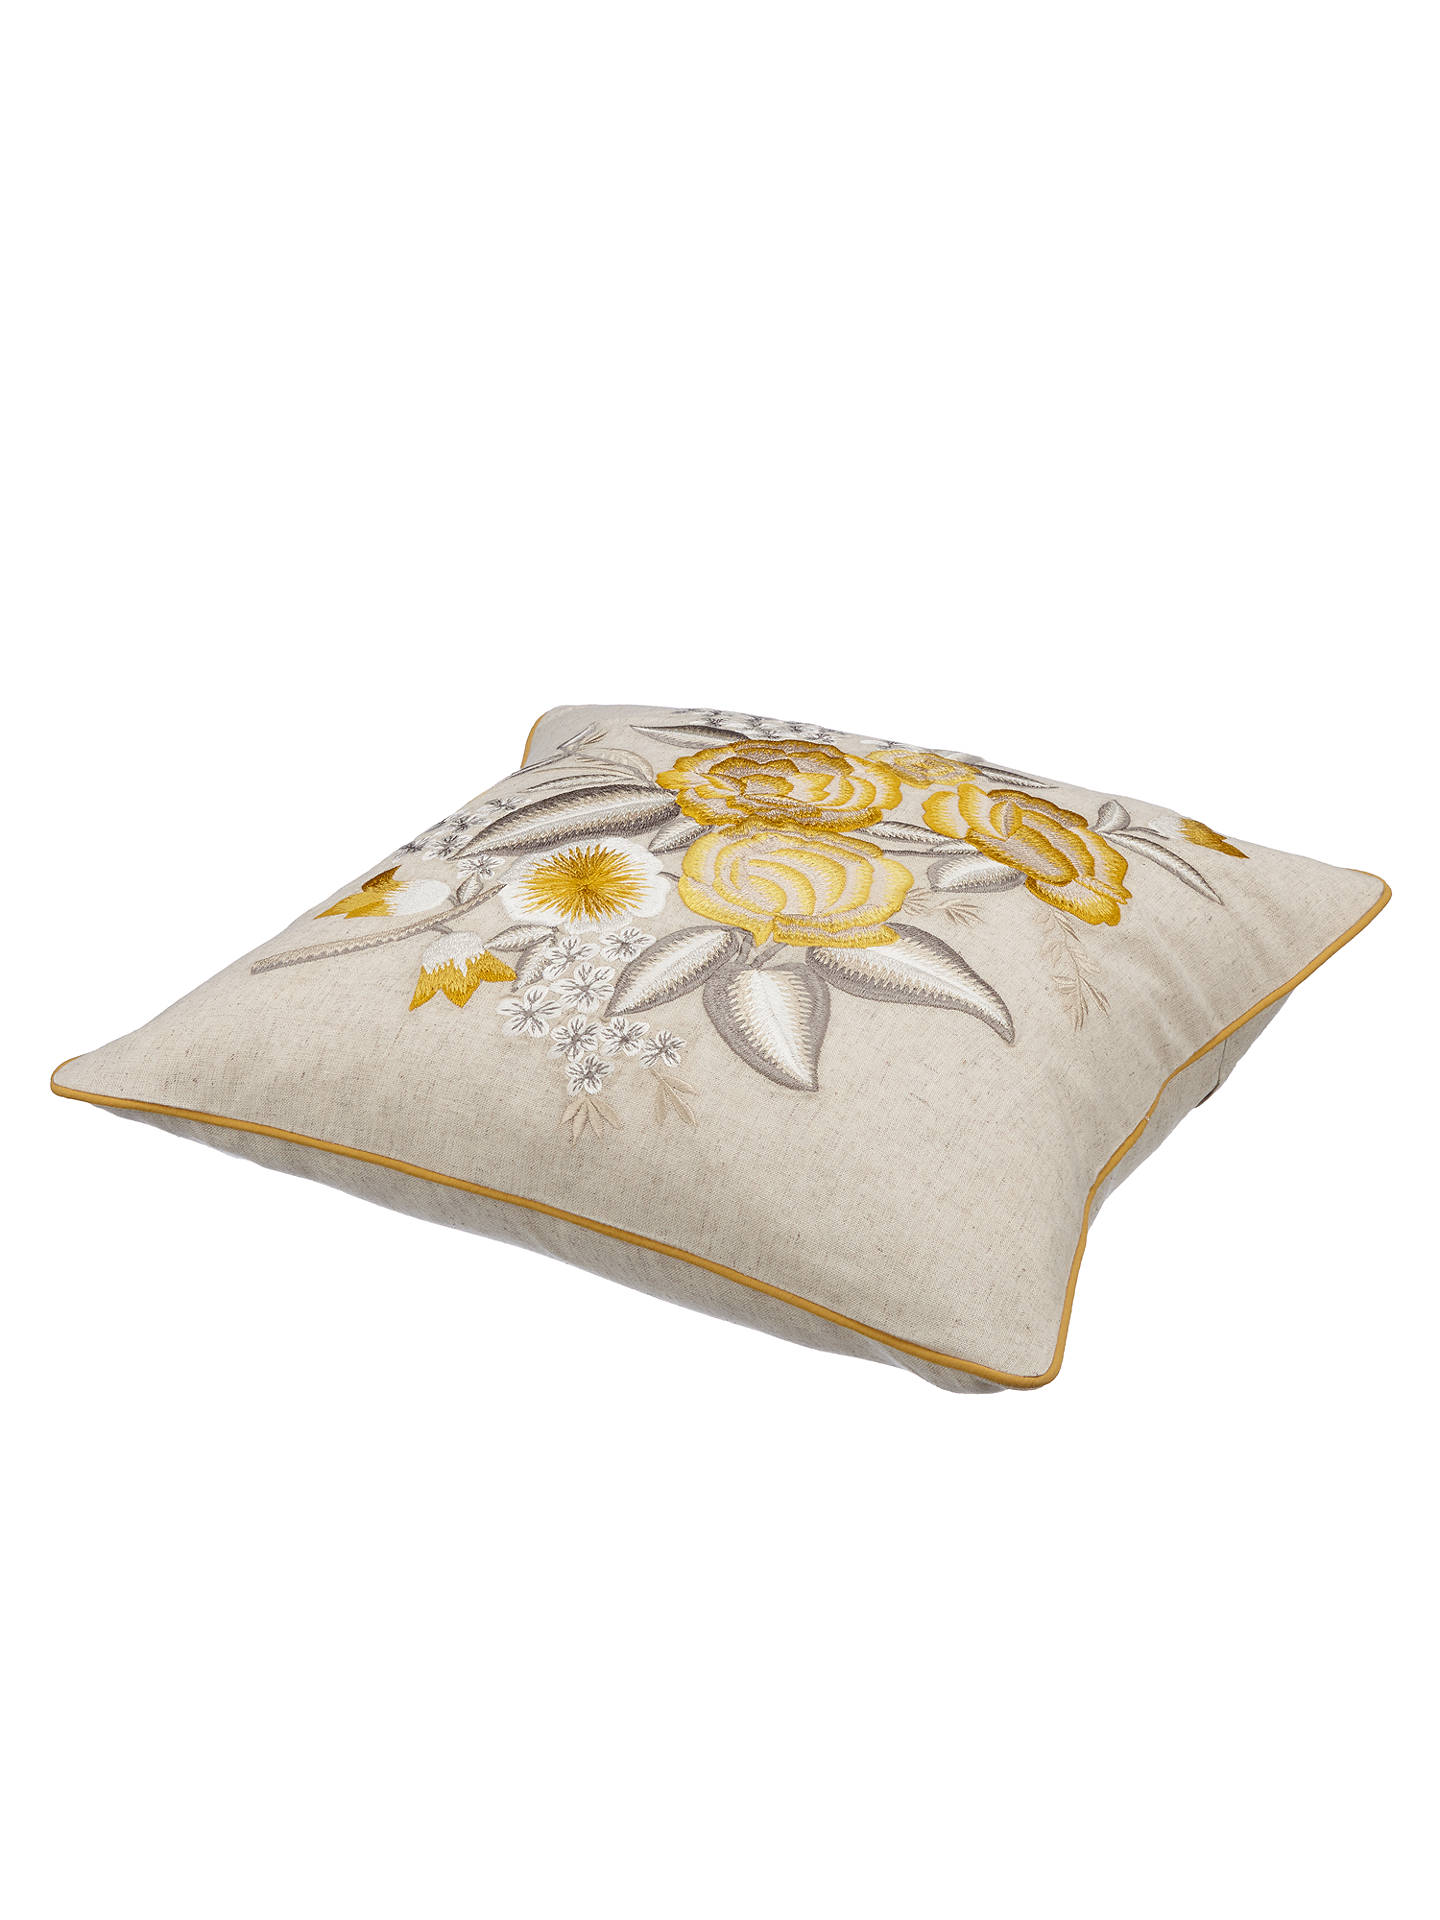 john lewis country flowers cushion yellow at john lewis. Black Bedroom Furniture Sets. Home Design Ideas